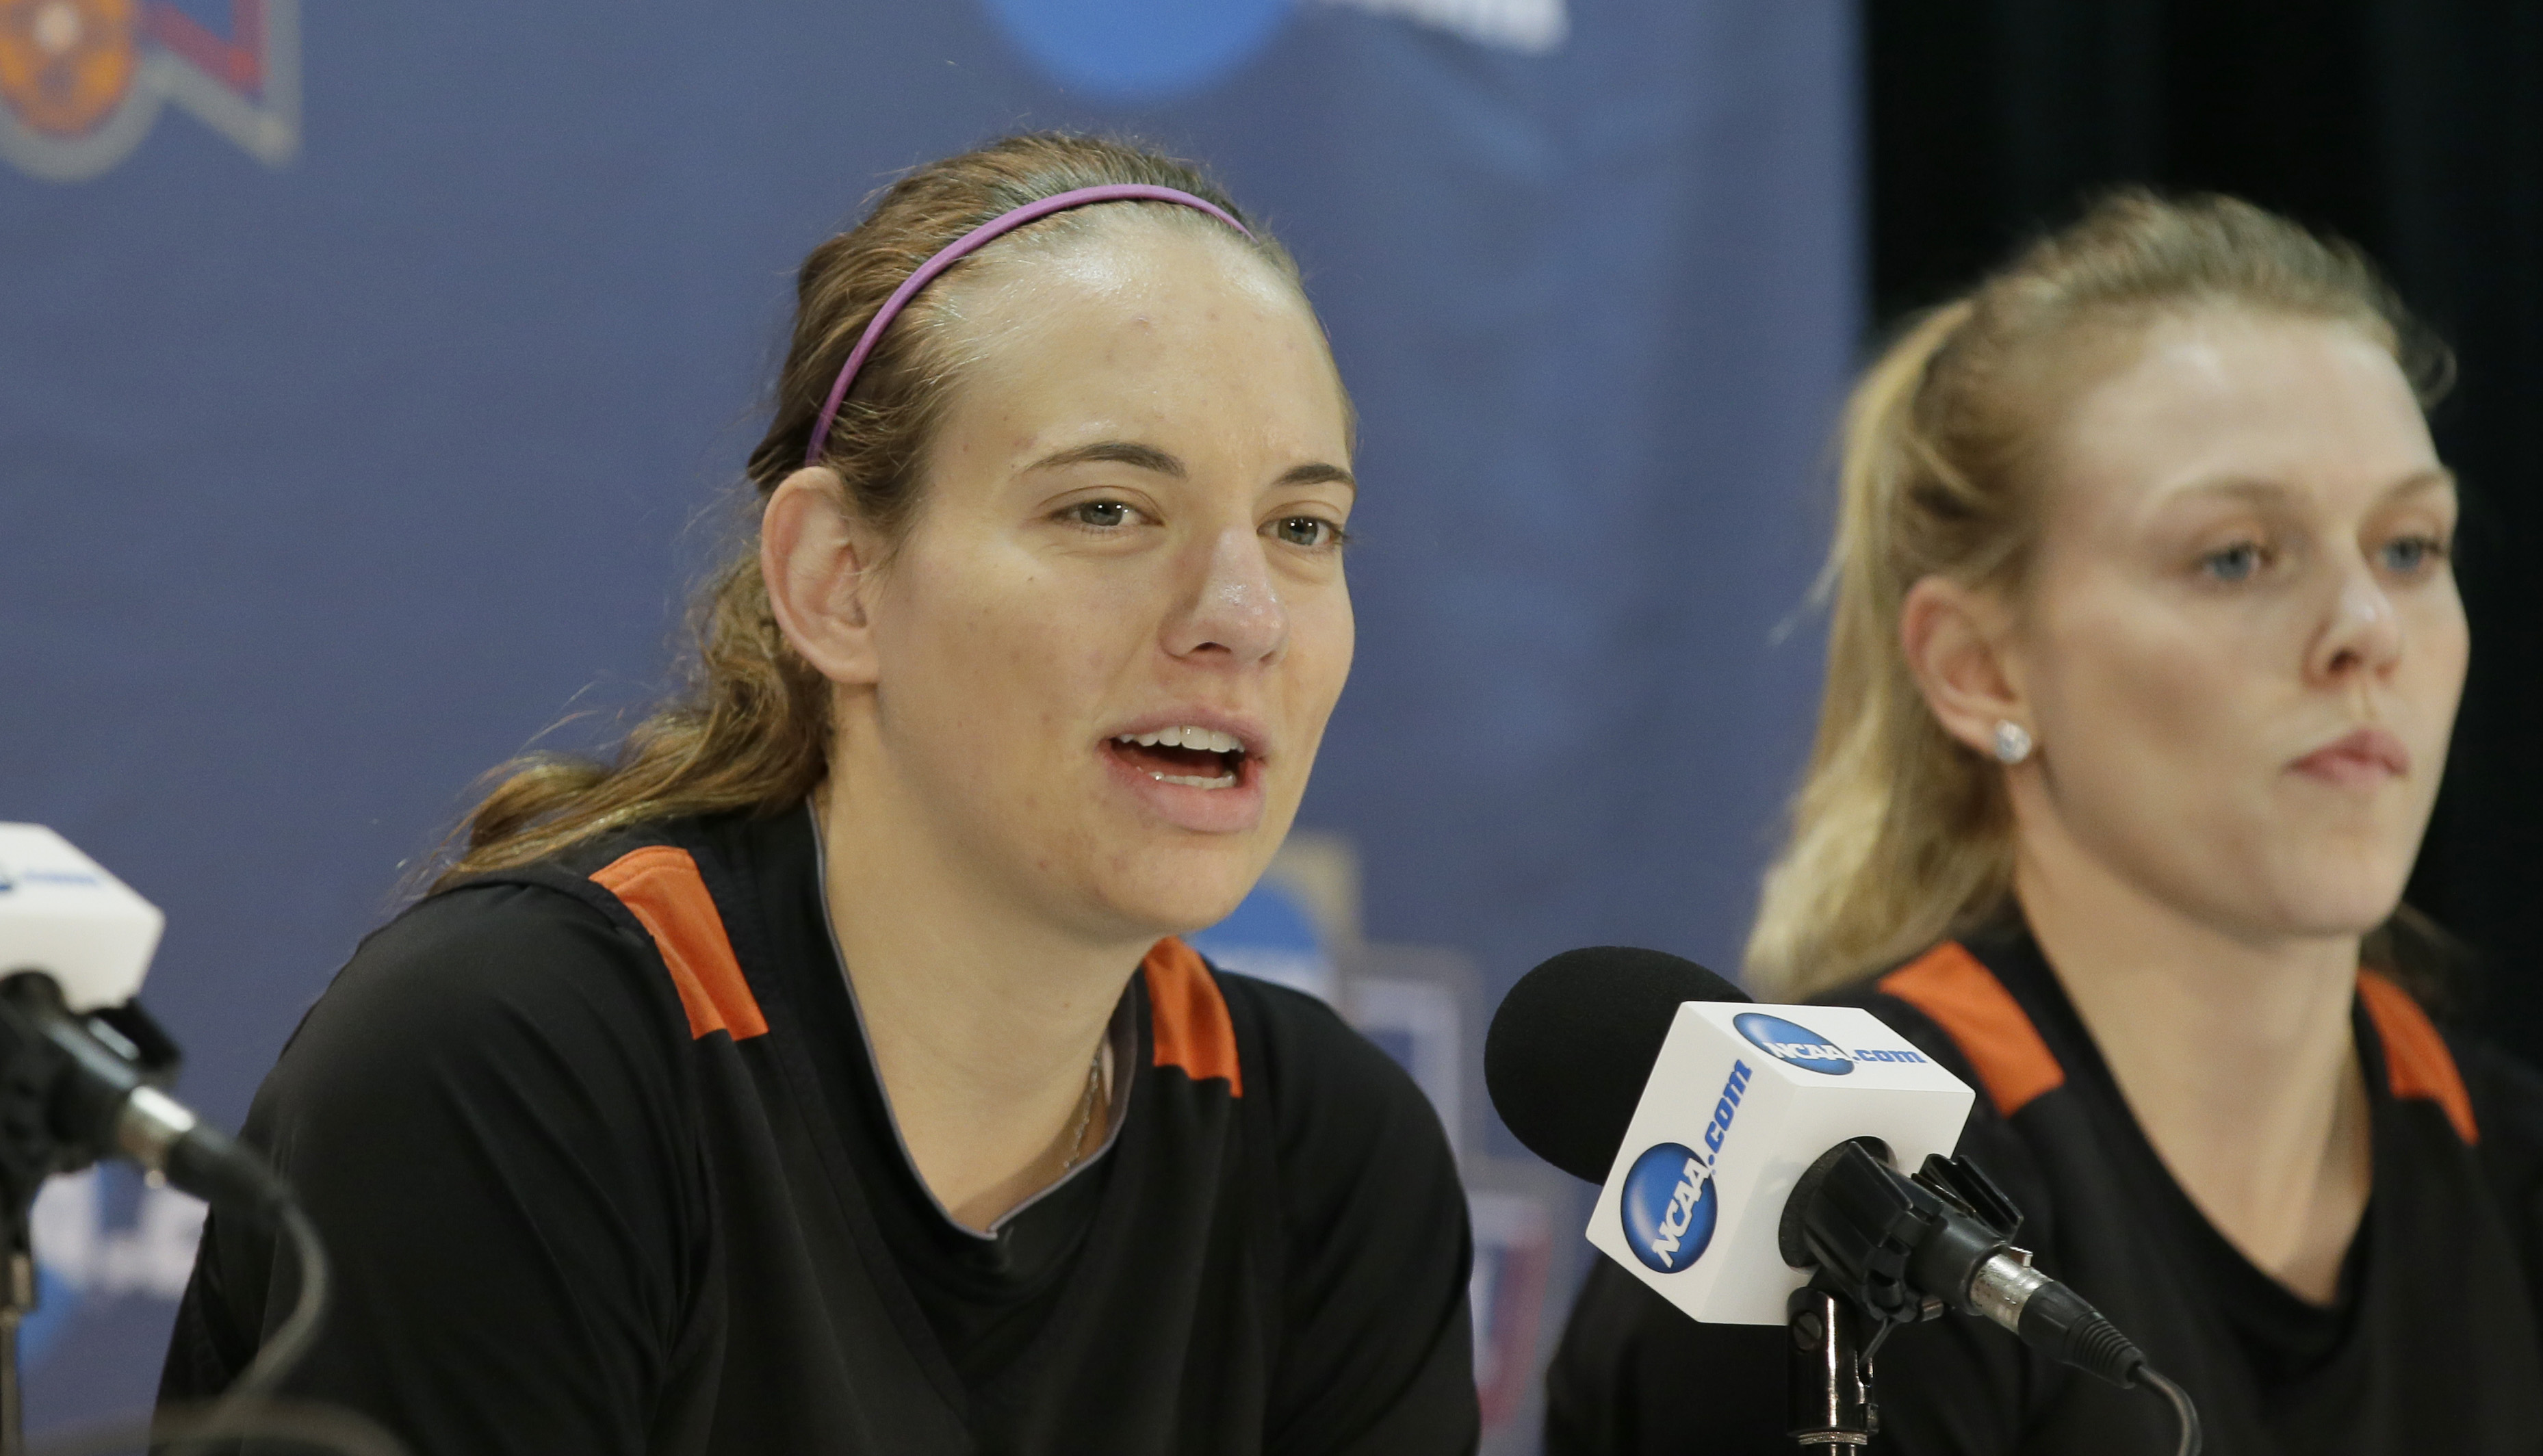 Oregon State guard Sydney Wiese, left, speaks as she sits by teammate guard Jamie Weisner during a news conference ahead of a regional final of the women's NCAA Tournament Sunday, March 27, 2016, in Dallas. Baylor faces Oregon State on Monday. (AP Photo/L